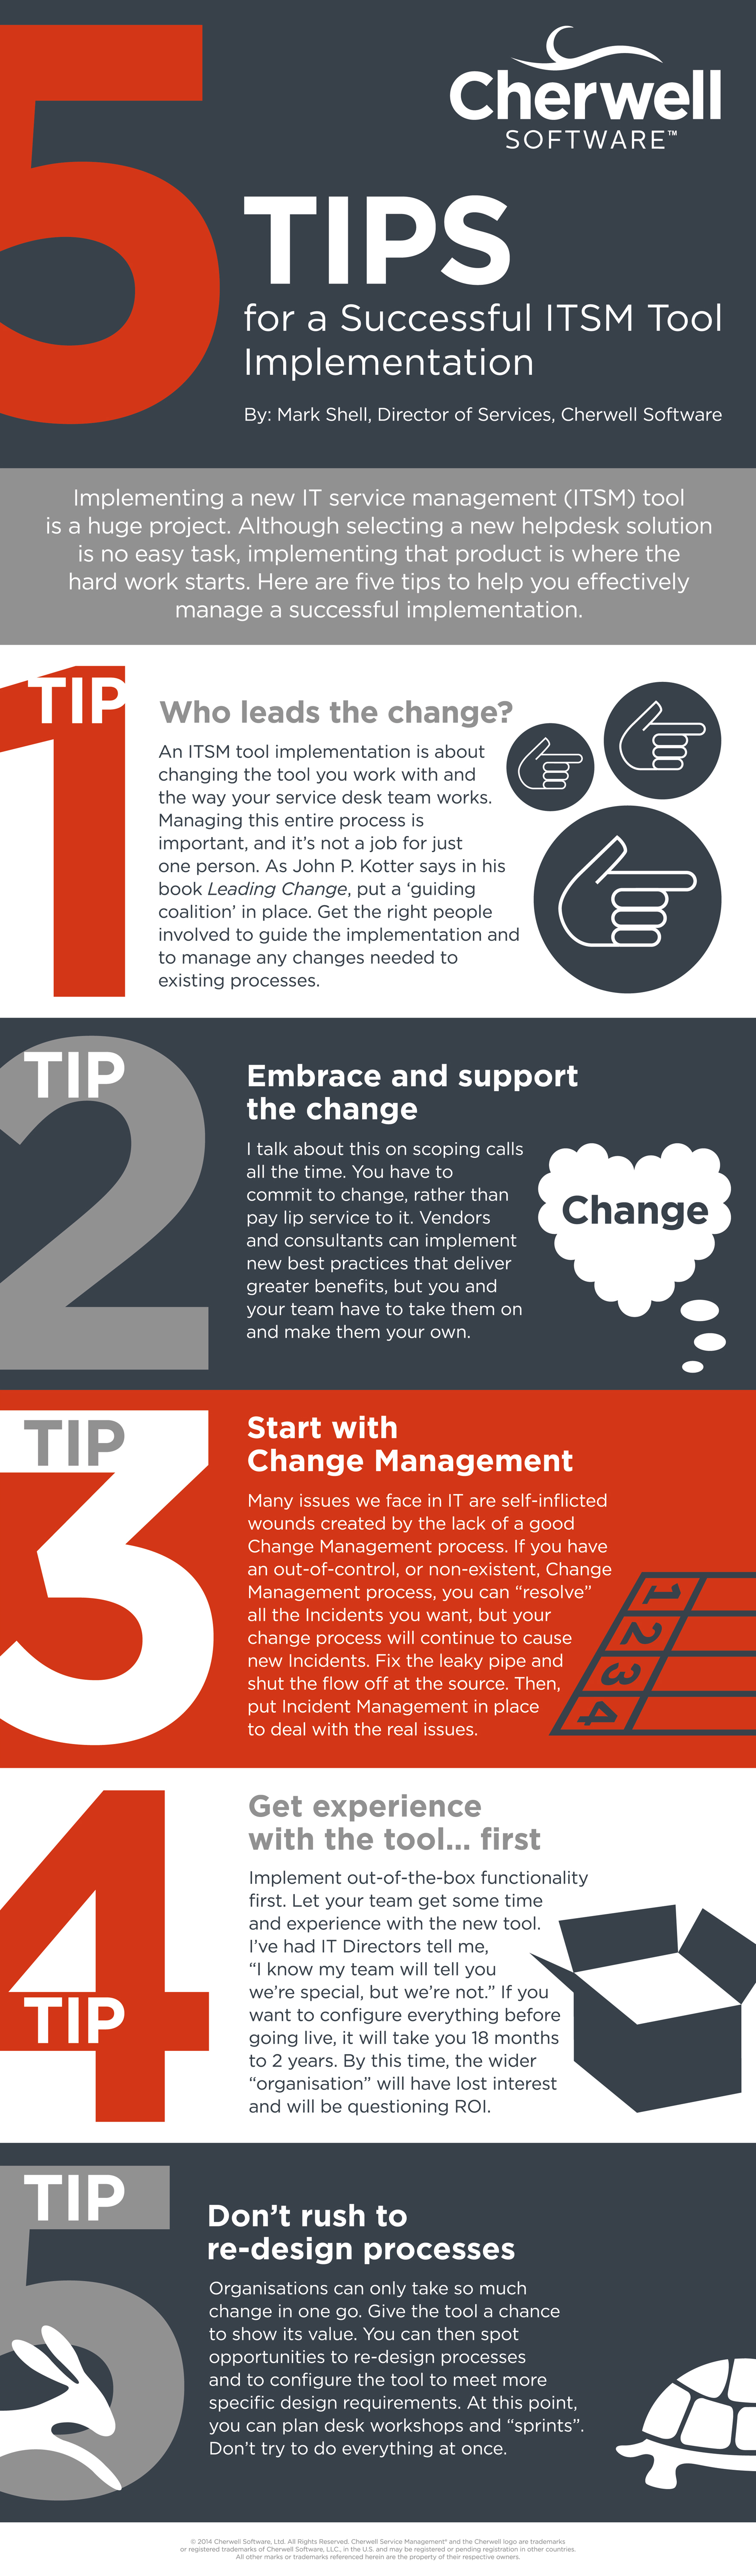 Cherwell_Successful_ITSM_Tool_Infographic